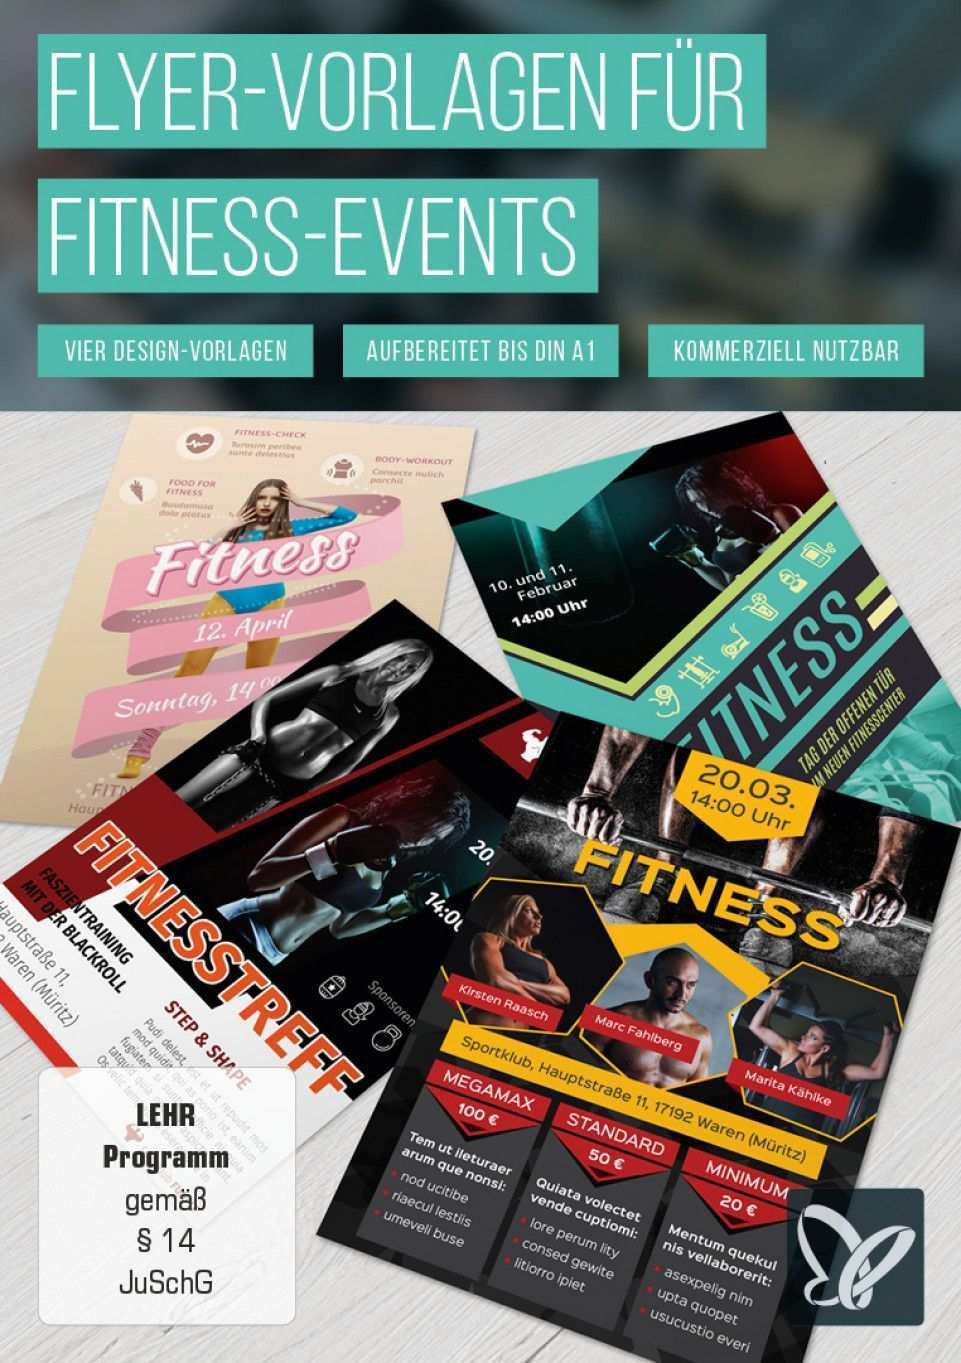 Flyer Vorlagen Fur Fitness Sport Und Fitnessstudios Zum Download Flyer Vorlage Fitnessstudio Fitness